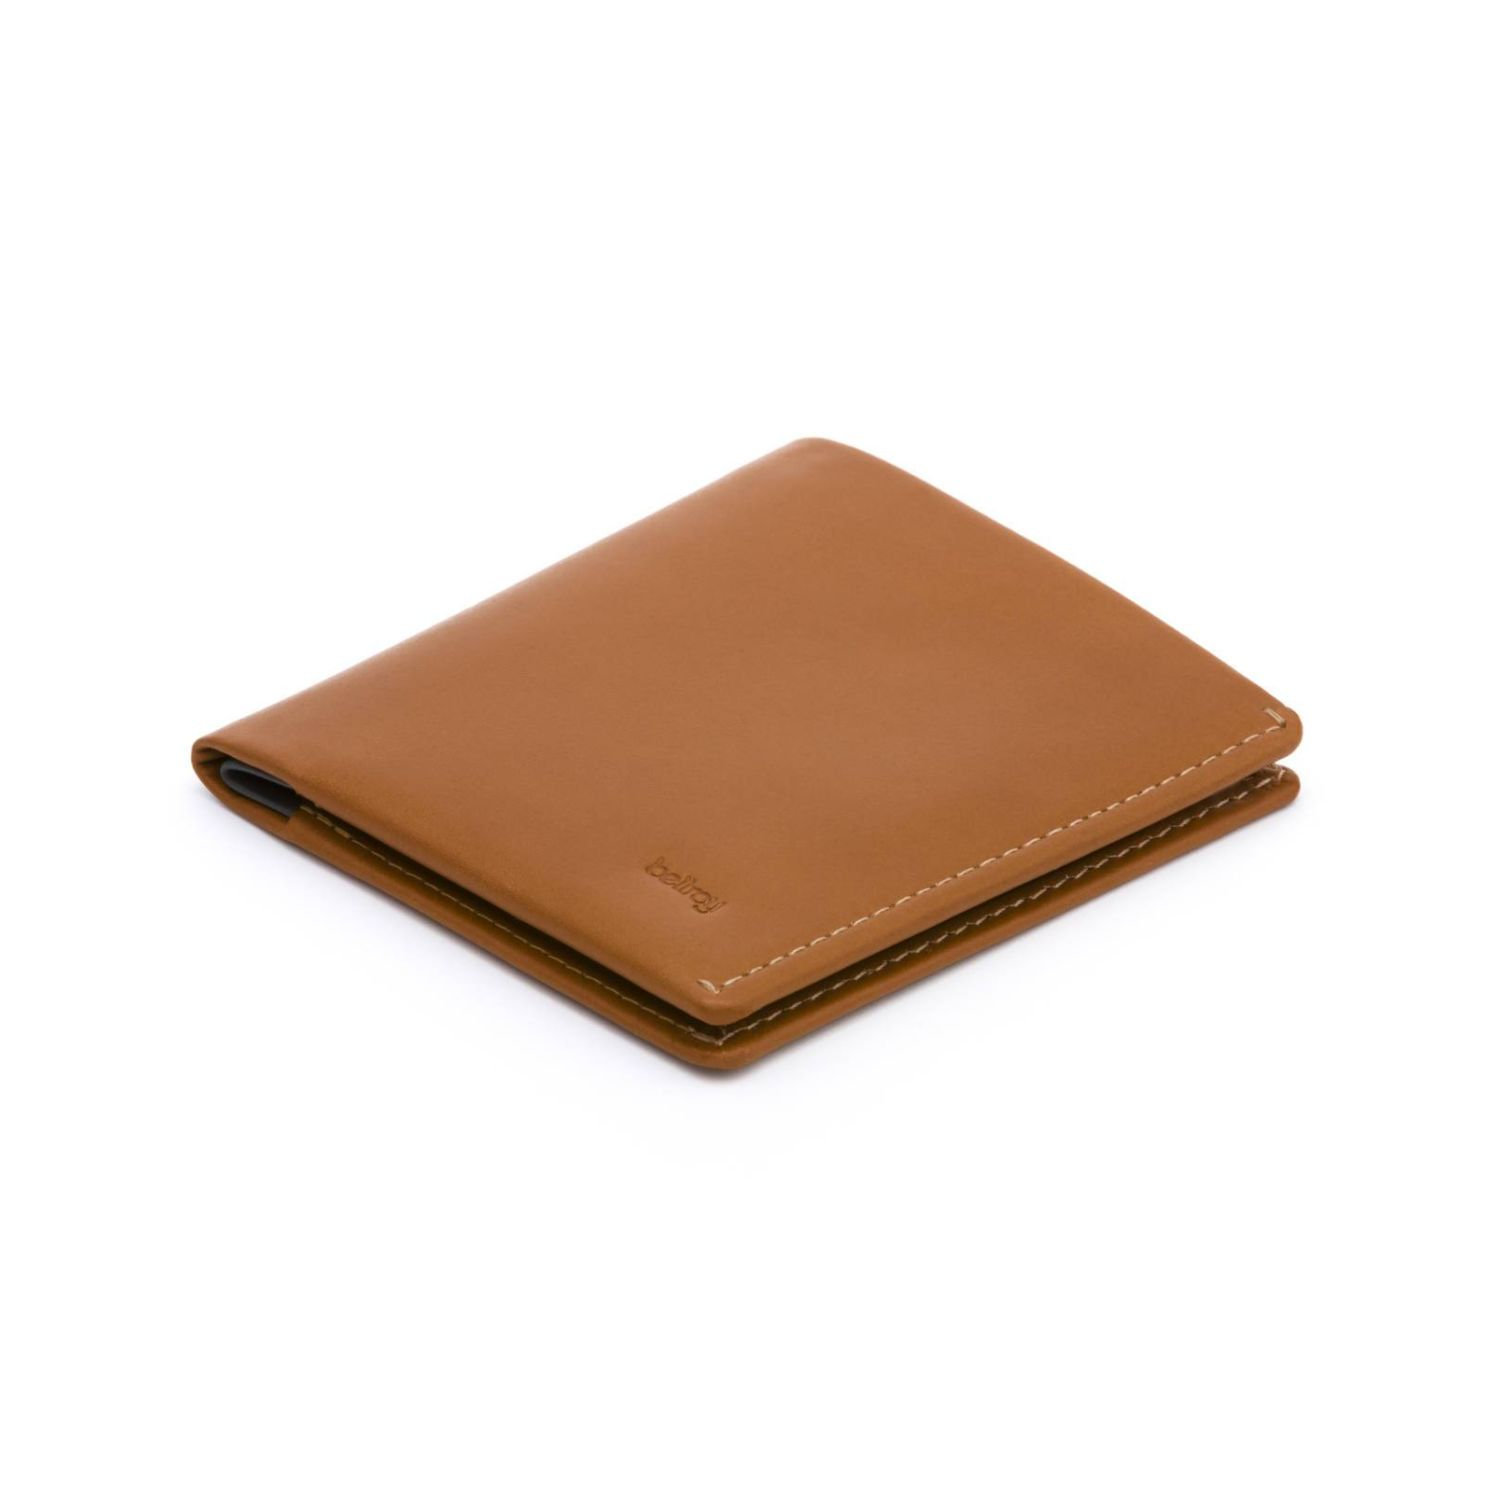 477add8b67f Buy Bellroy Note Sleeve Wallet RFID - Caramel in Singapore ...